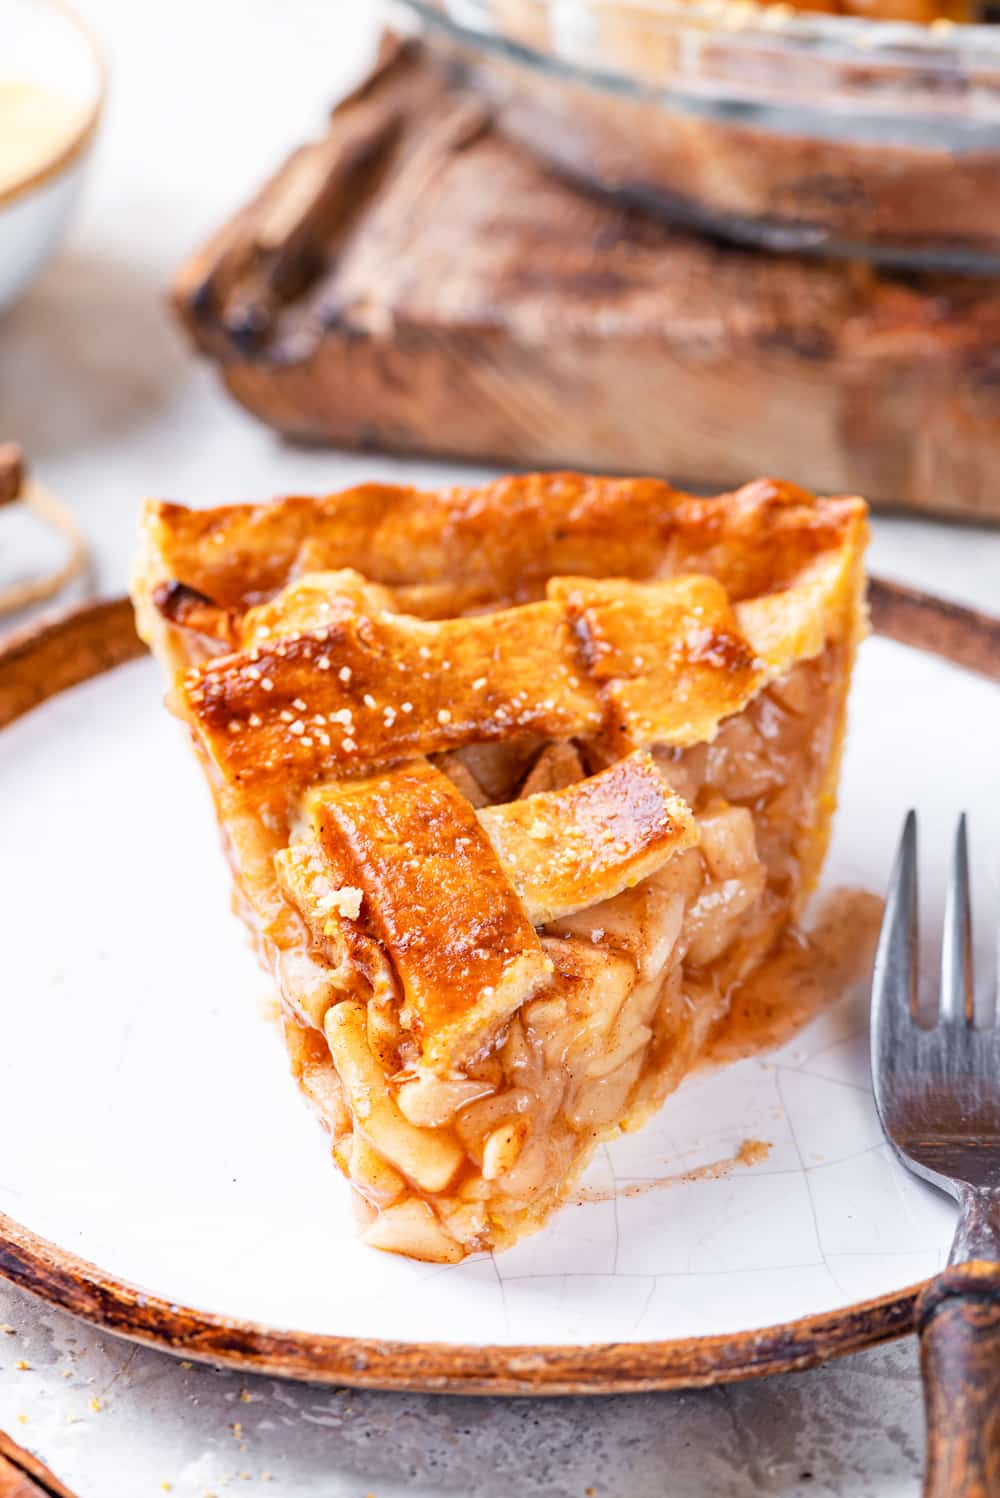 A slice of vegan apple pie on a white plate with the tip of the pie at the front and crust at the back. There is a fork on the right side of the plate and the plate is on a grey counter.